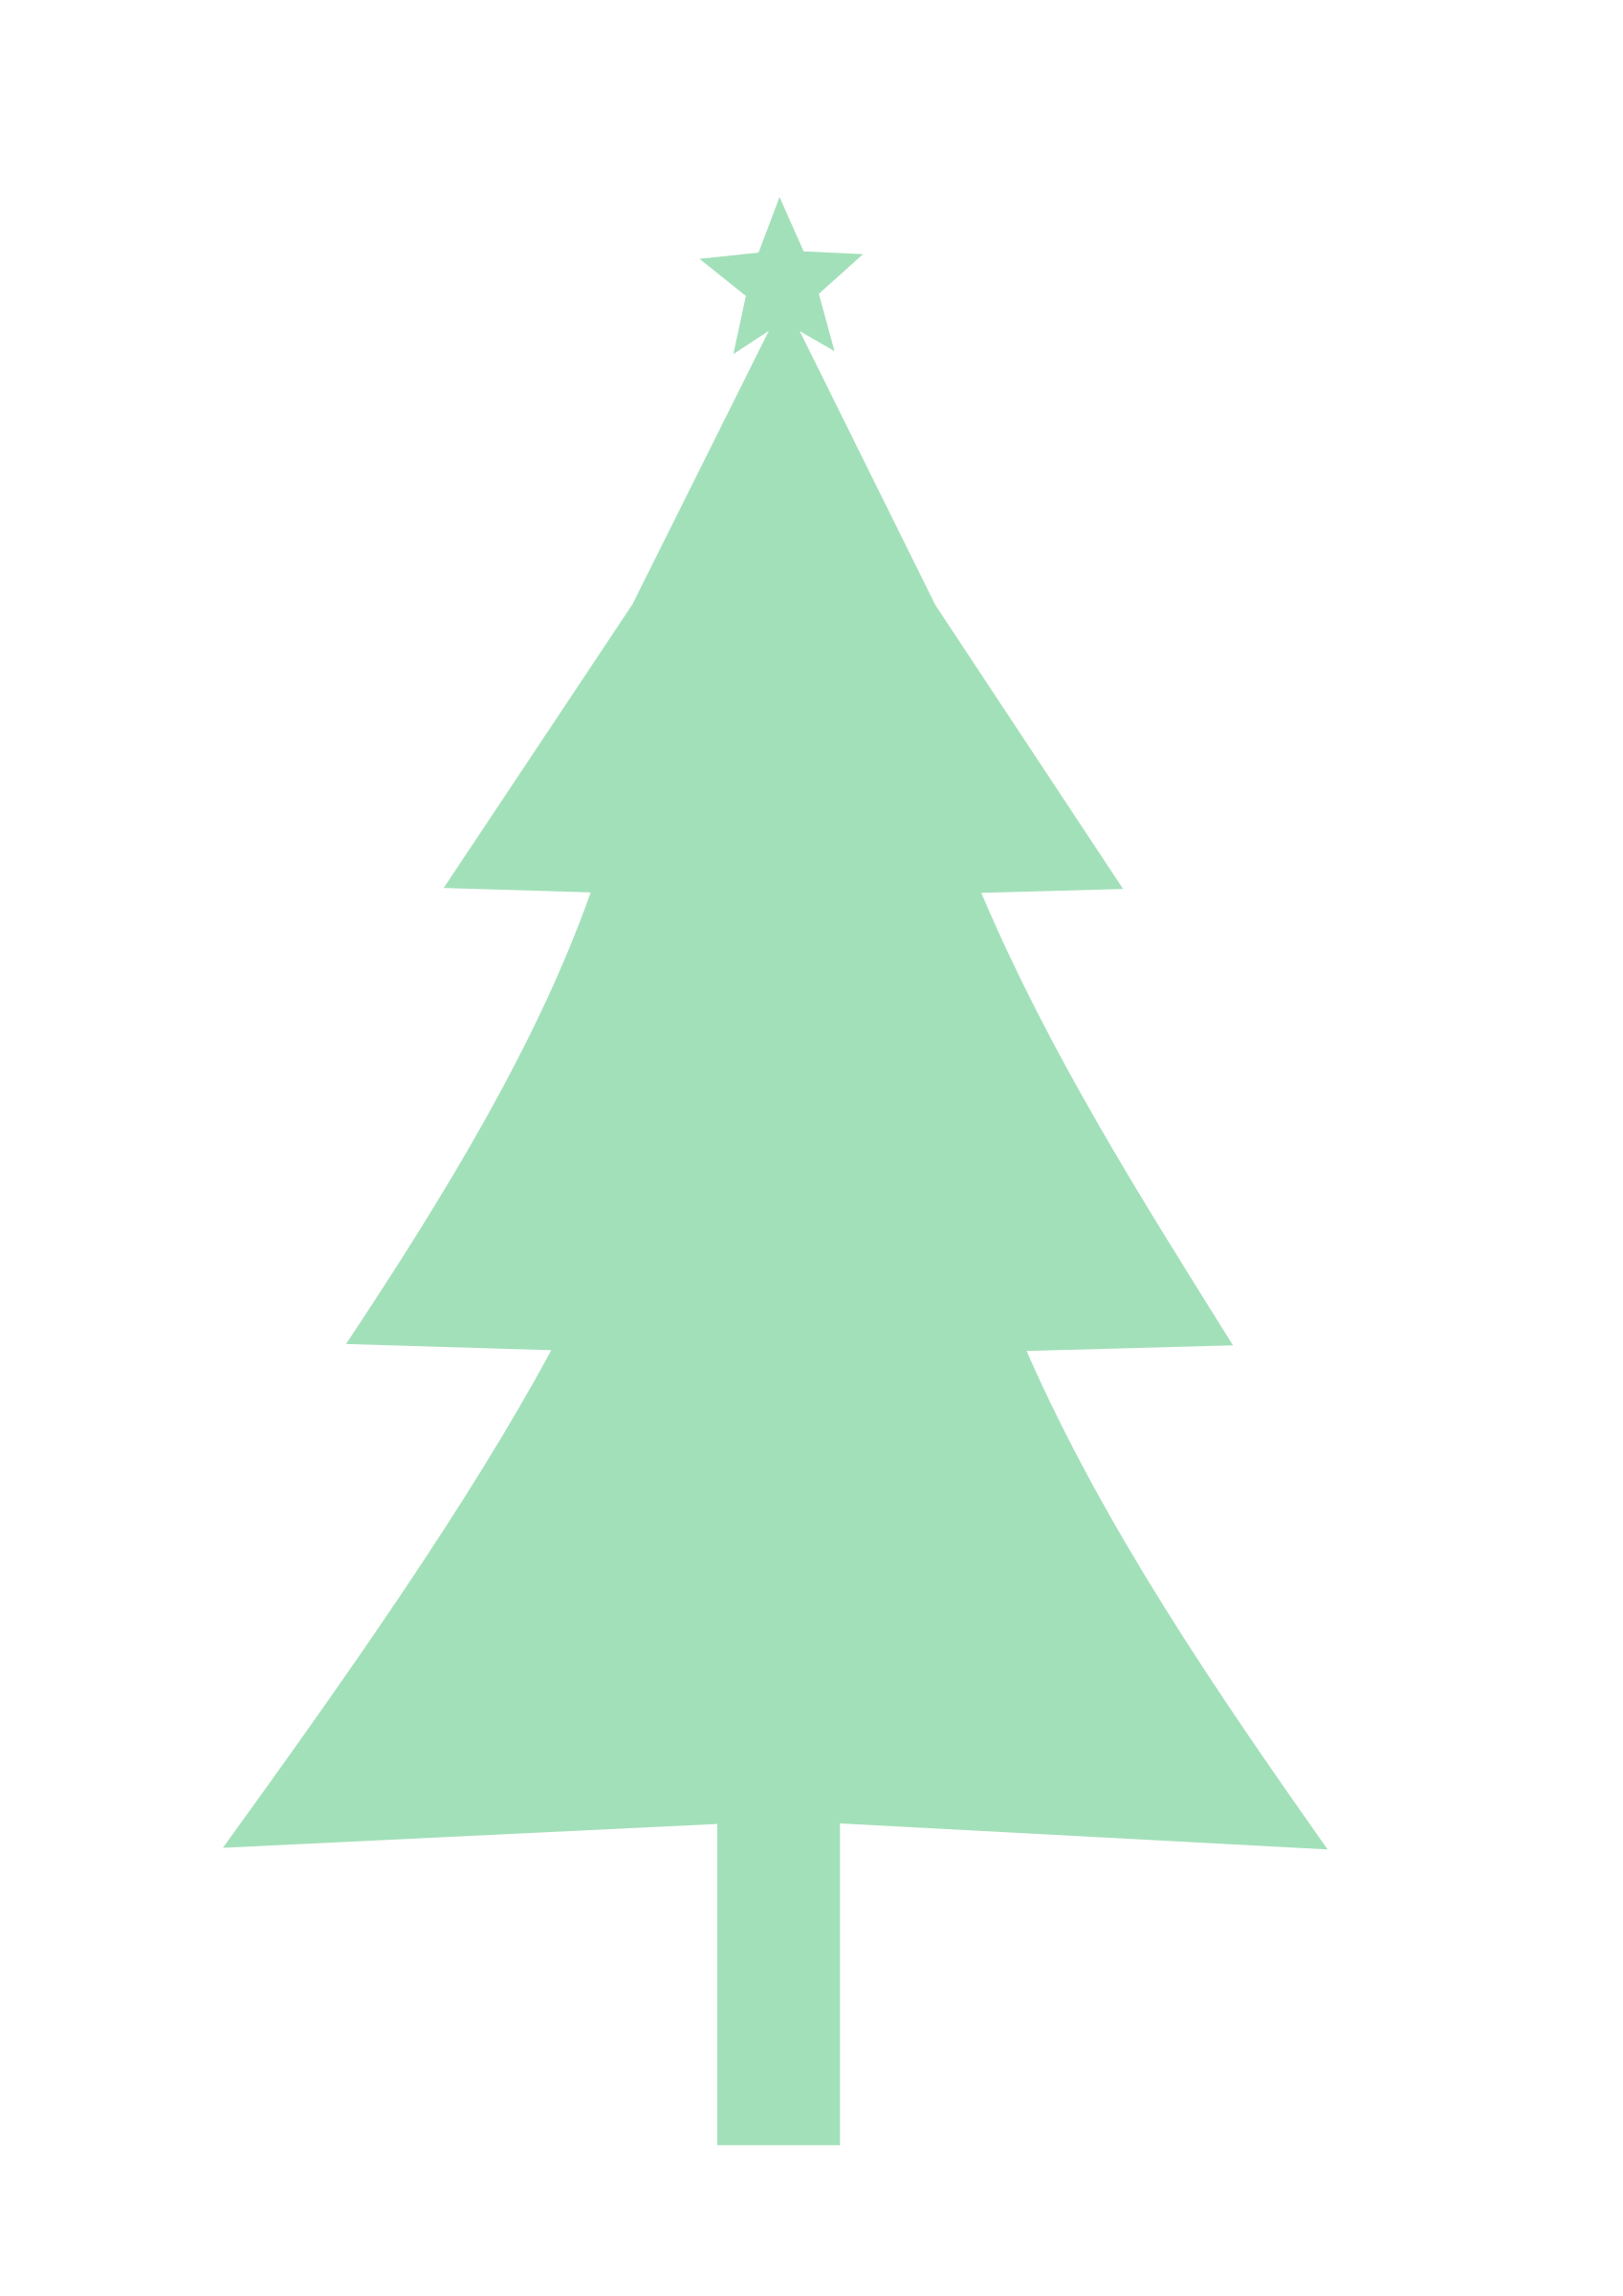 Christmas silhouette clipart clip freeuse stock Clipart - Christmas tree Silhouette clip freeuse stock